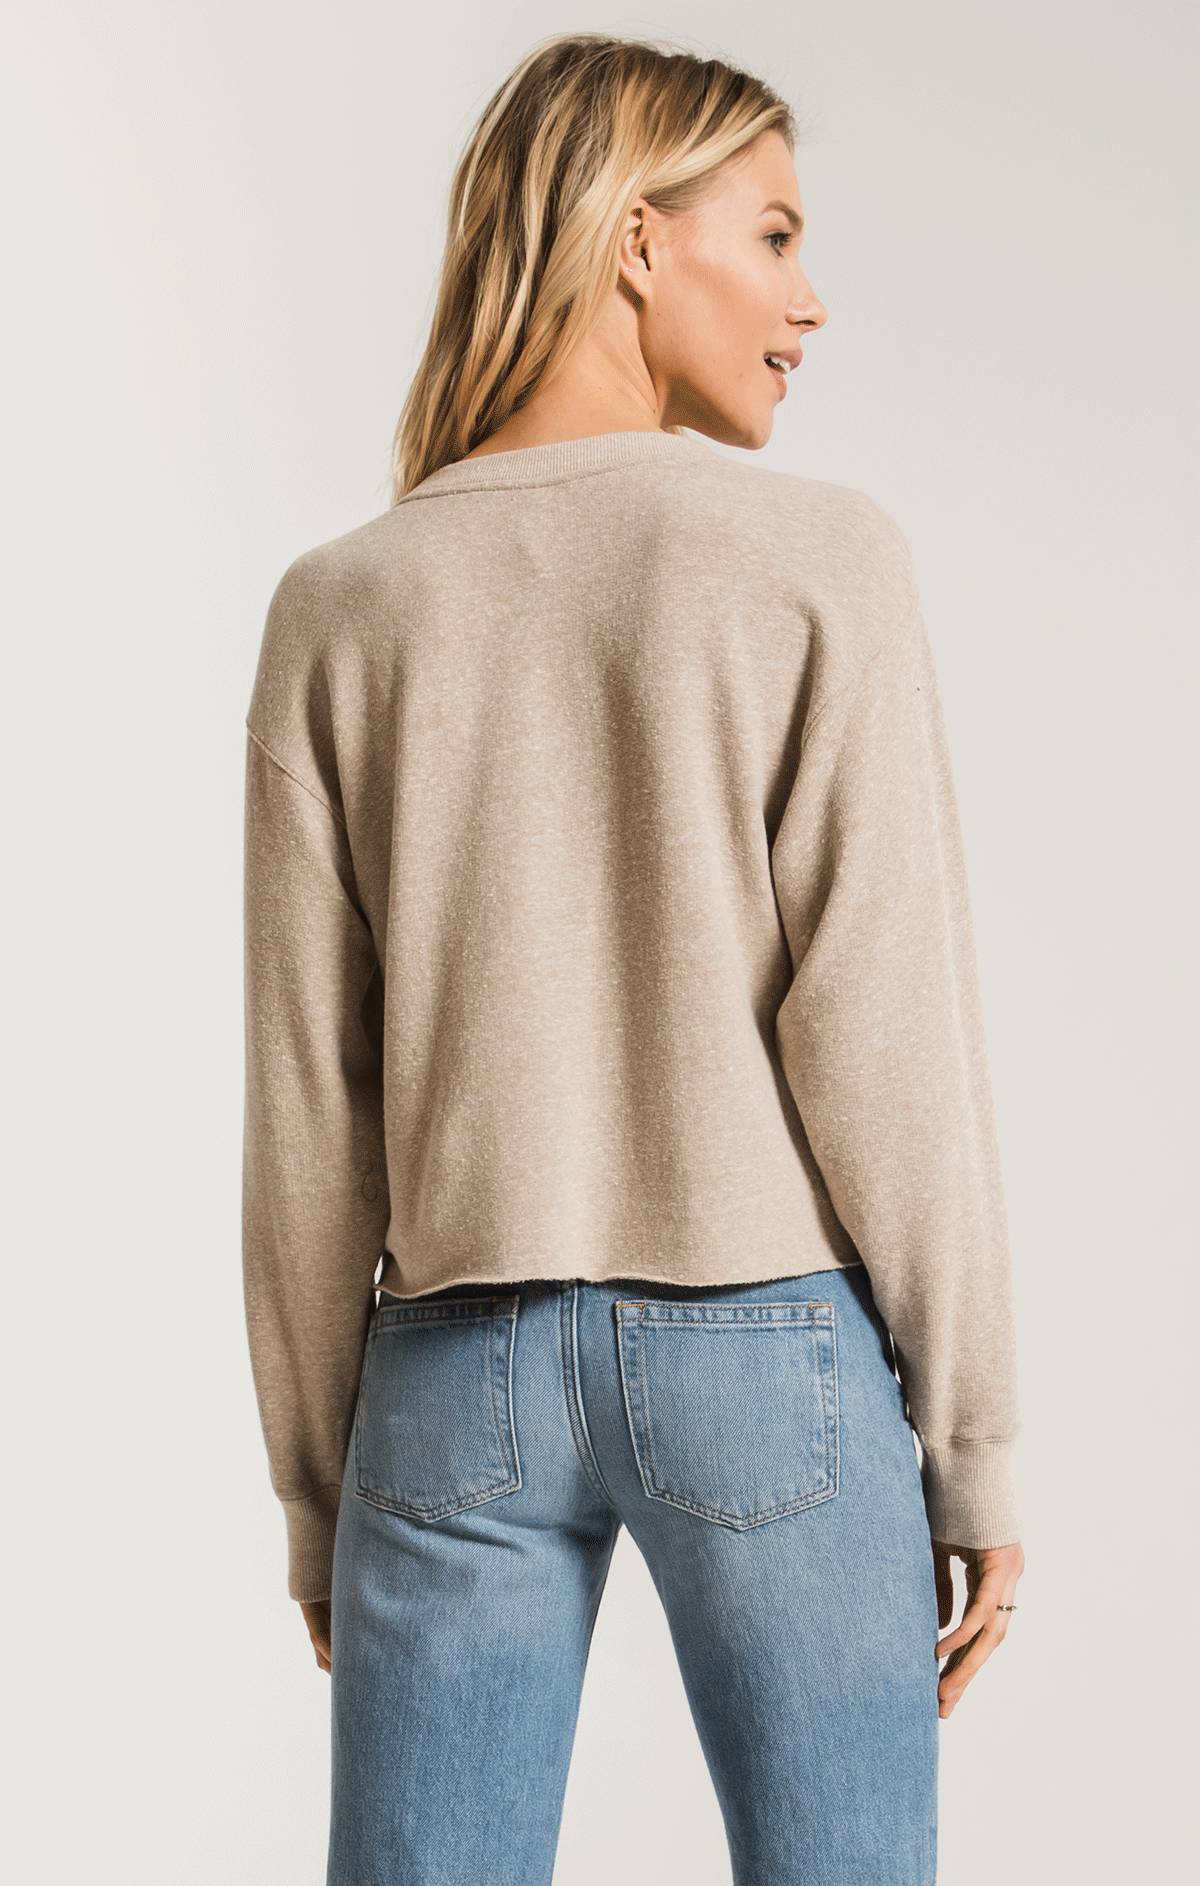 Tops The Triblend Long Sleeve Cropped Tee Simply Taupe